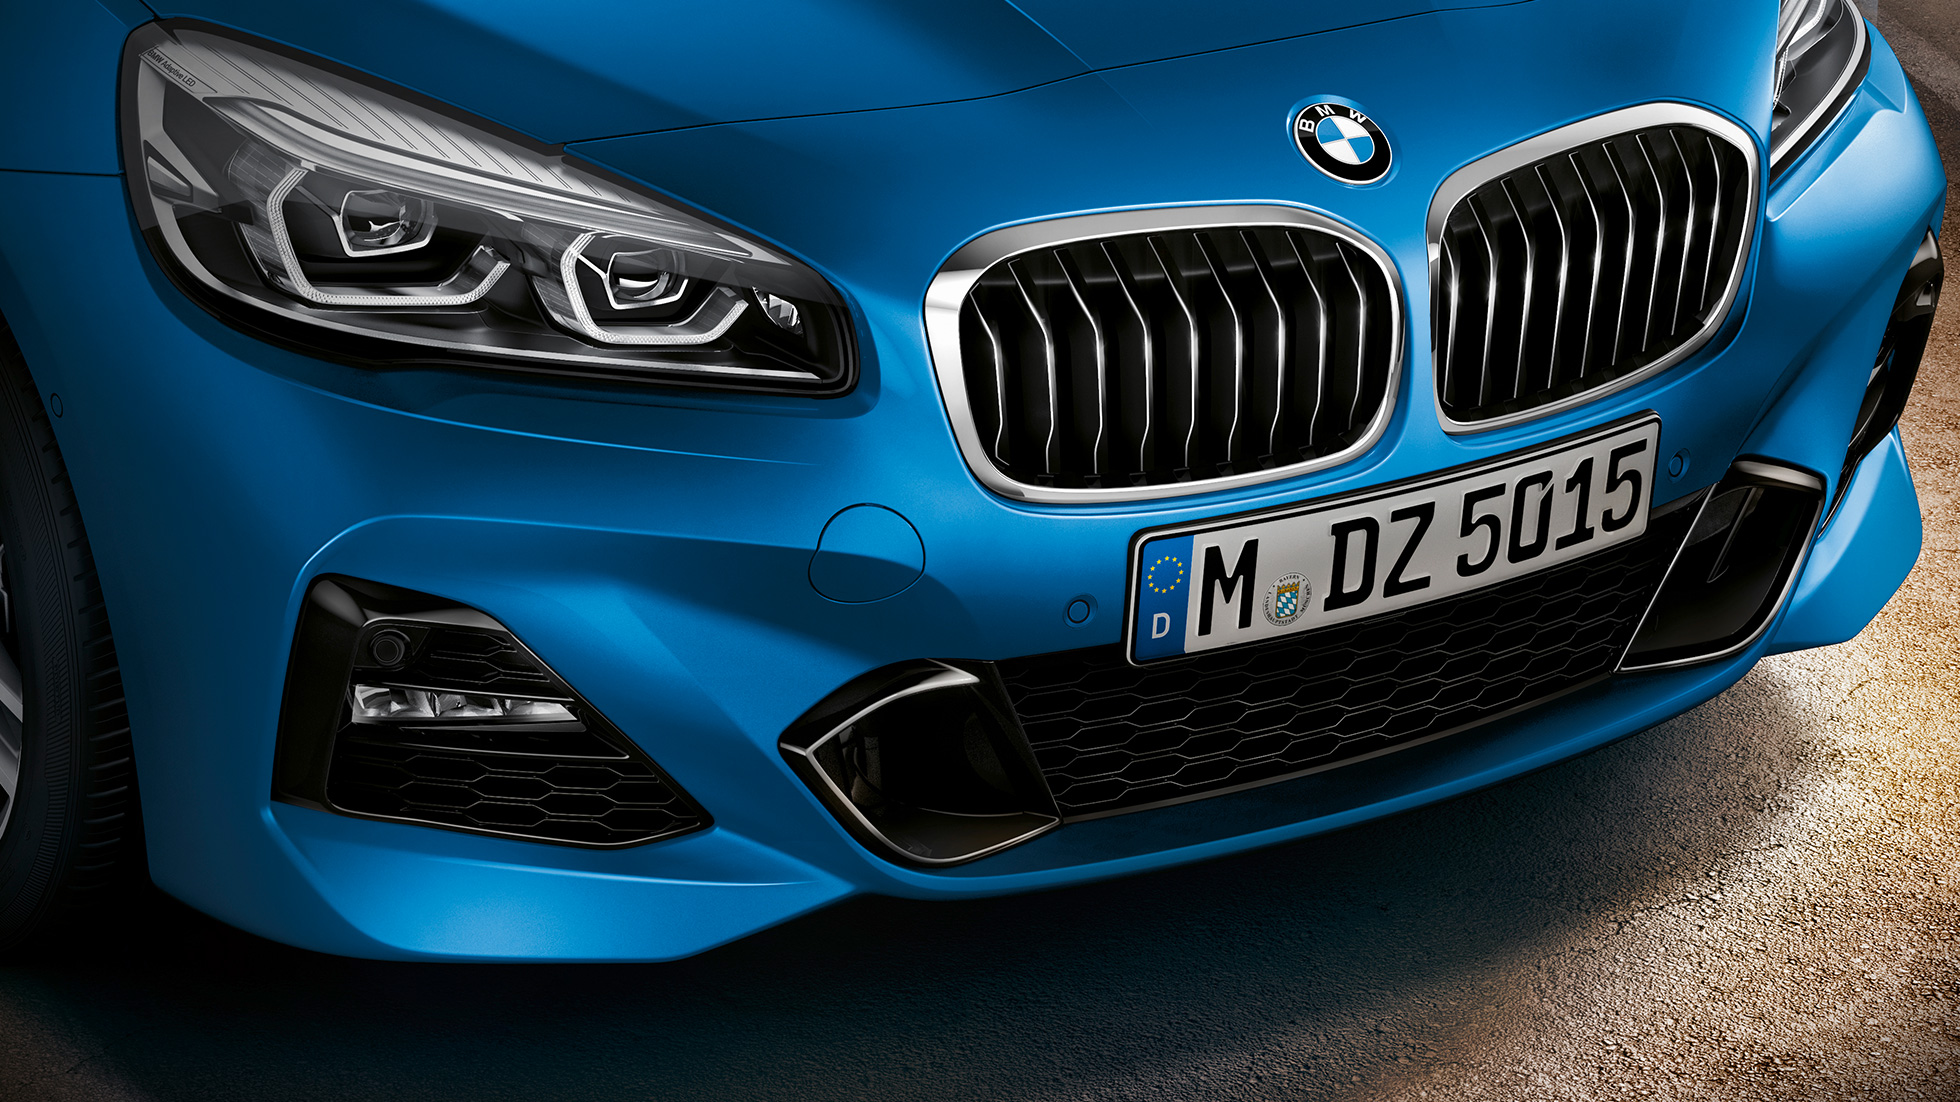 Dobbelgrill BMW 2-serie Gran Tourer F46 Facelift 2018 Estoril blå metallic Næropptak front